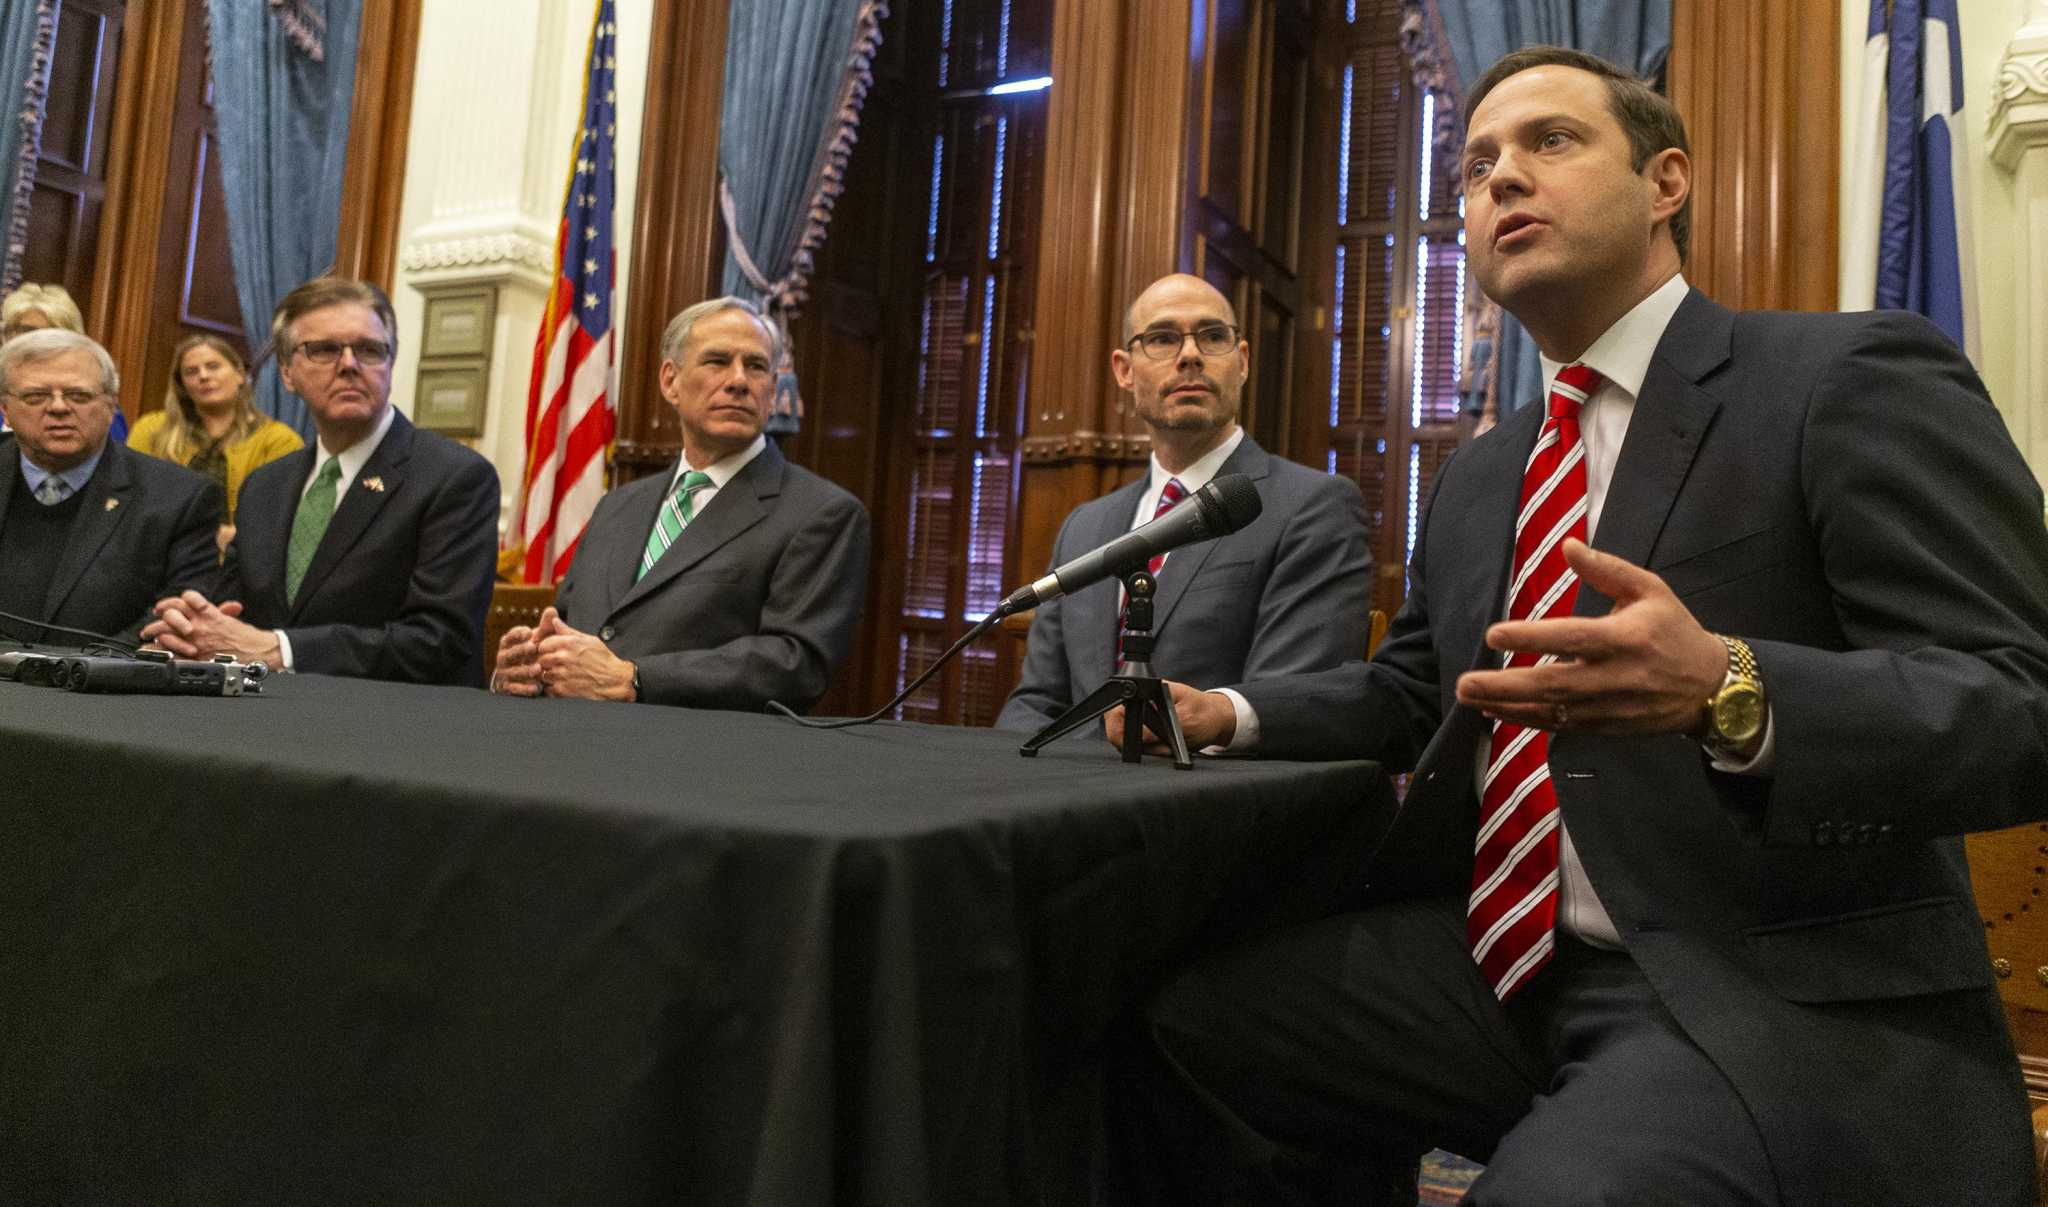 Recording reveals Texas lawmakers' plans to escalate war on local governments